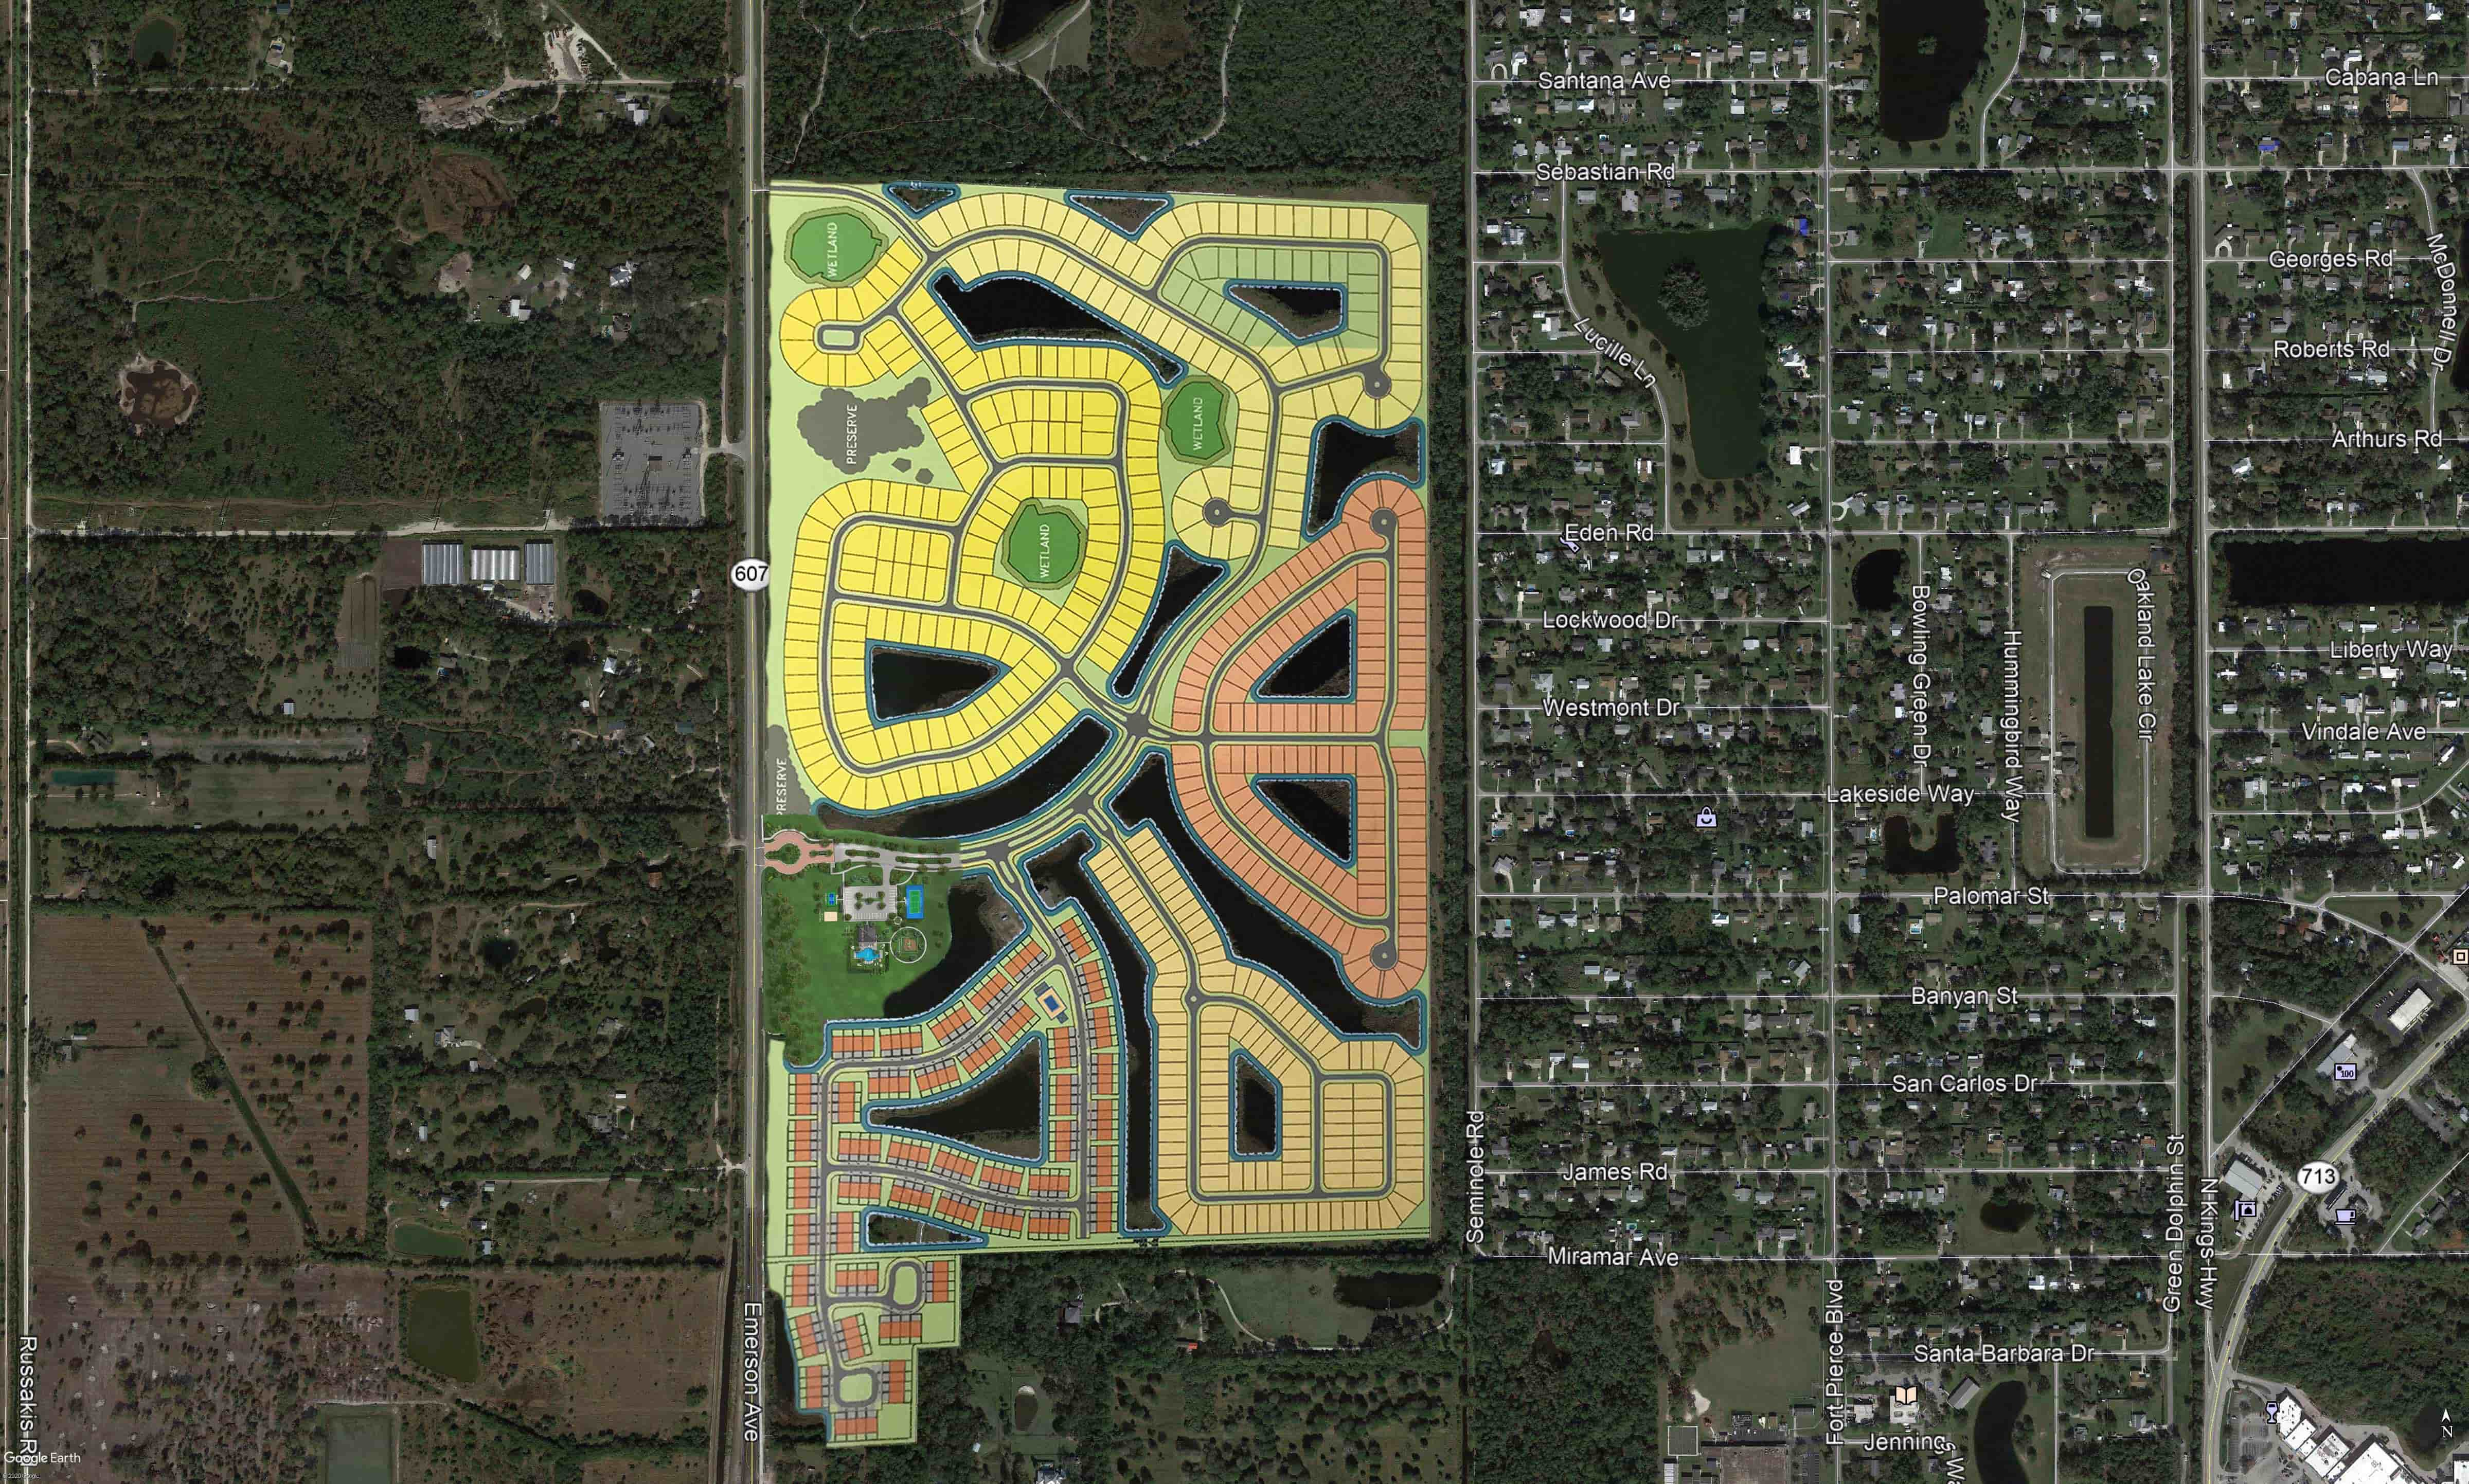 Waterstone_Saint Lucie County_710 Residential Units-min (1)